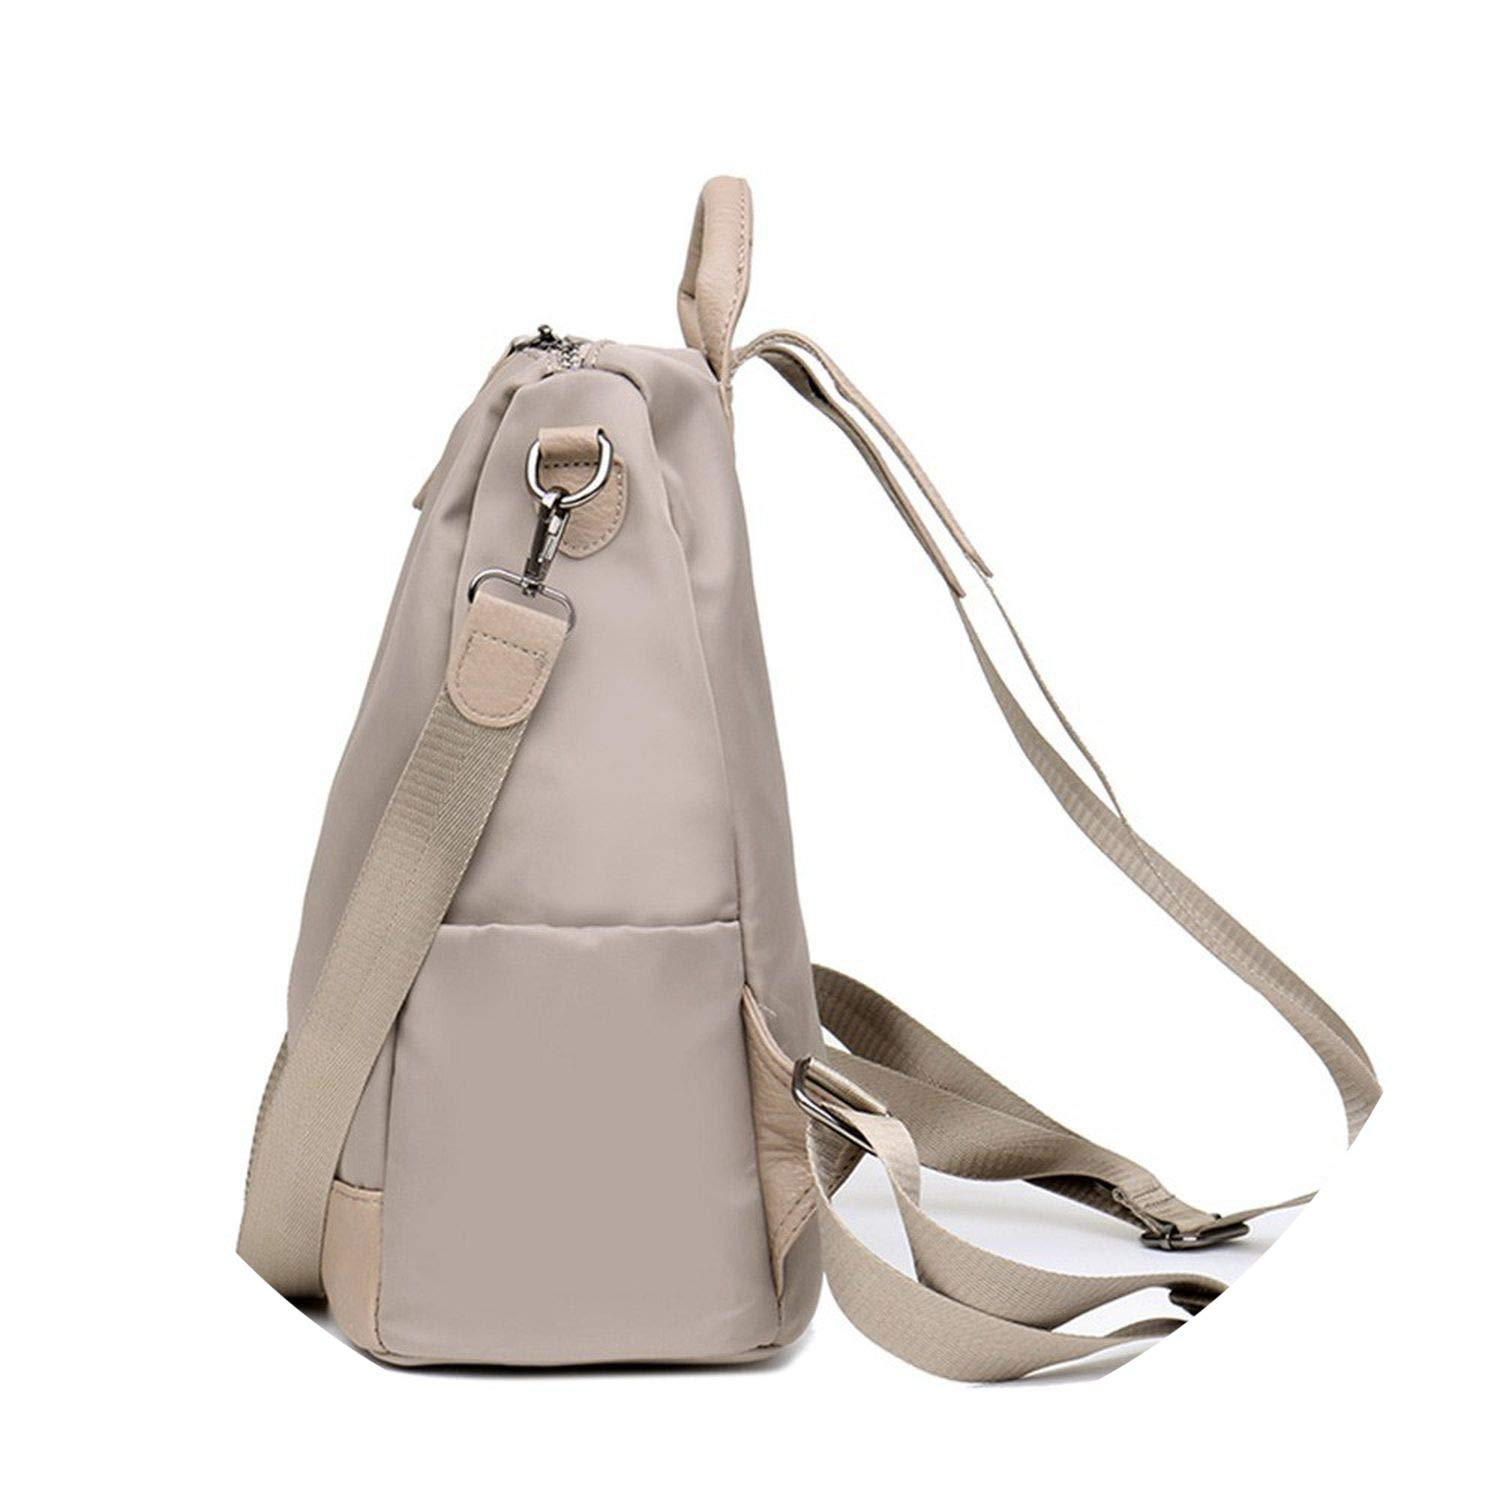 Backpack Girls Backpacks Teenager CollegeSchool Bags Rucksack,Gray,20 inches